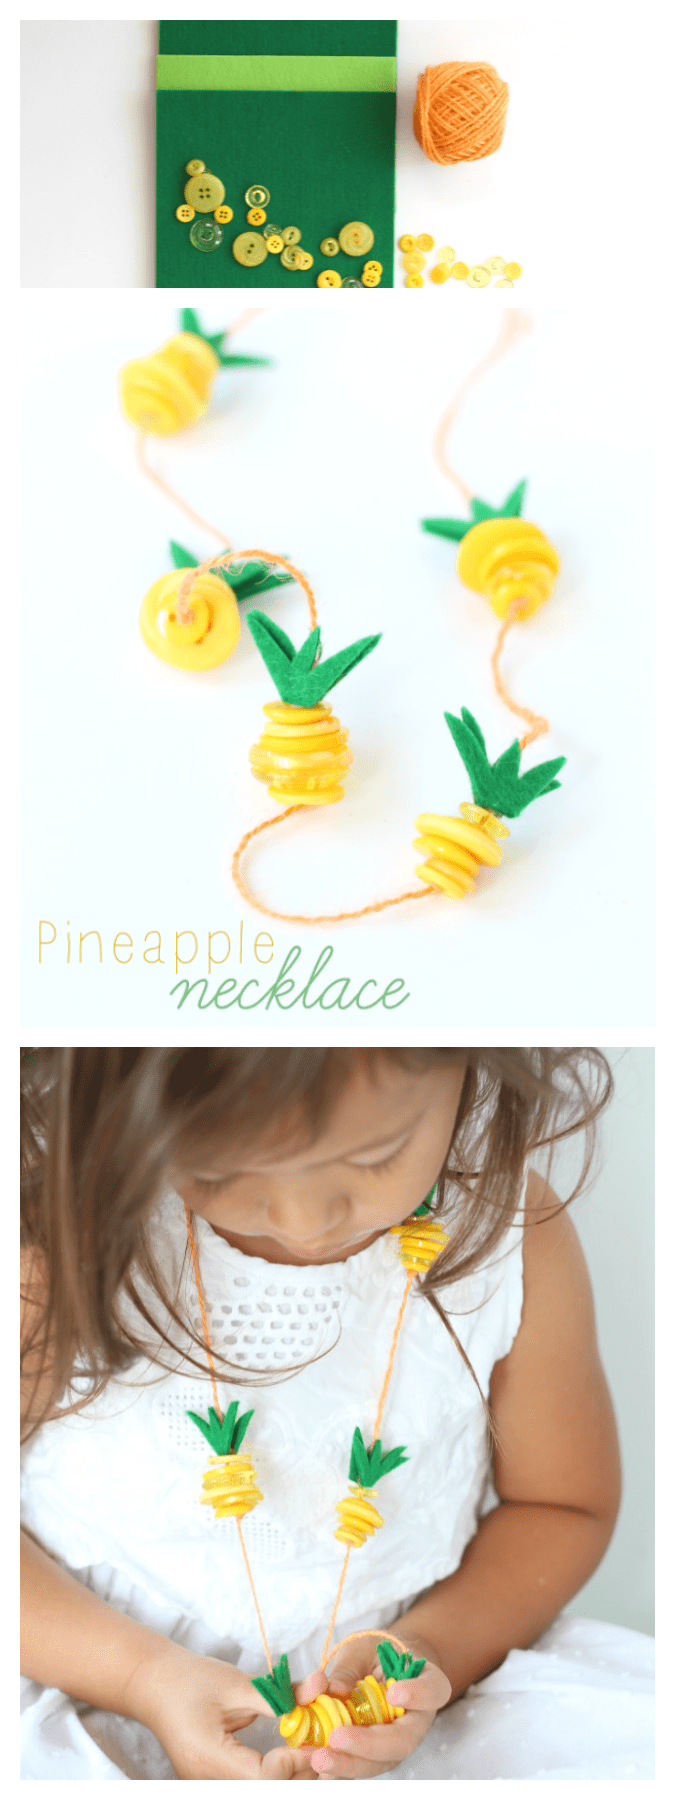 Pineapple necklace kids craft pinterest